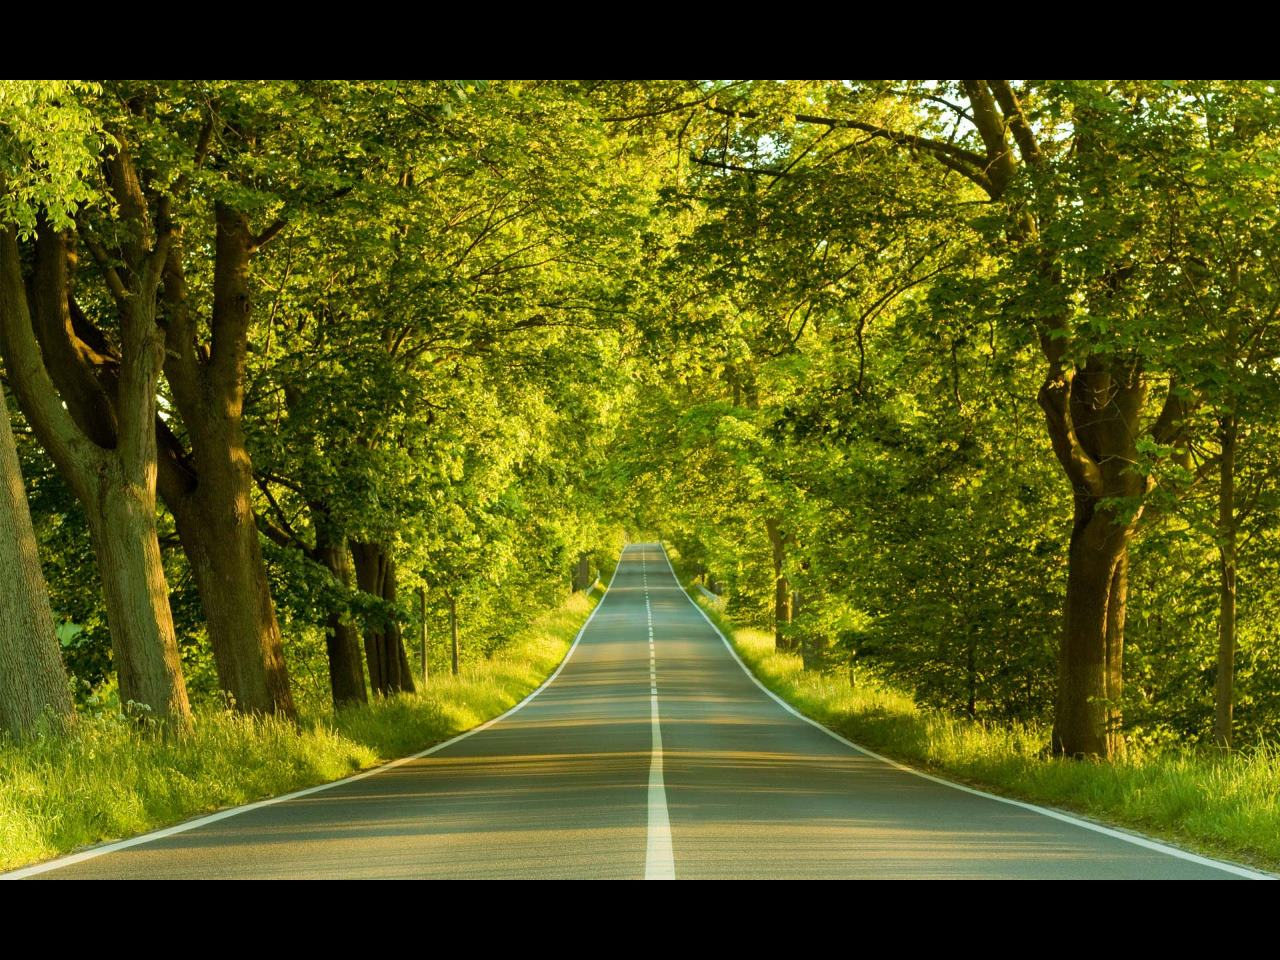 open road in spring Wallpaper Background 30463 1280x960